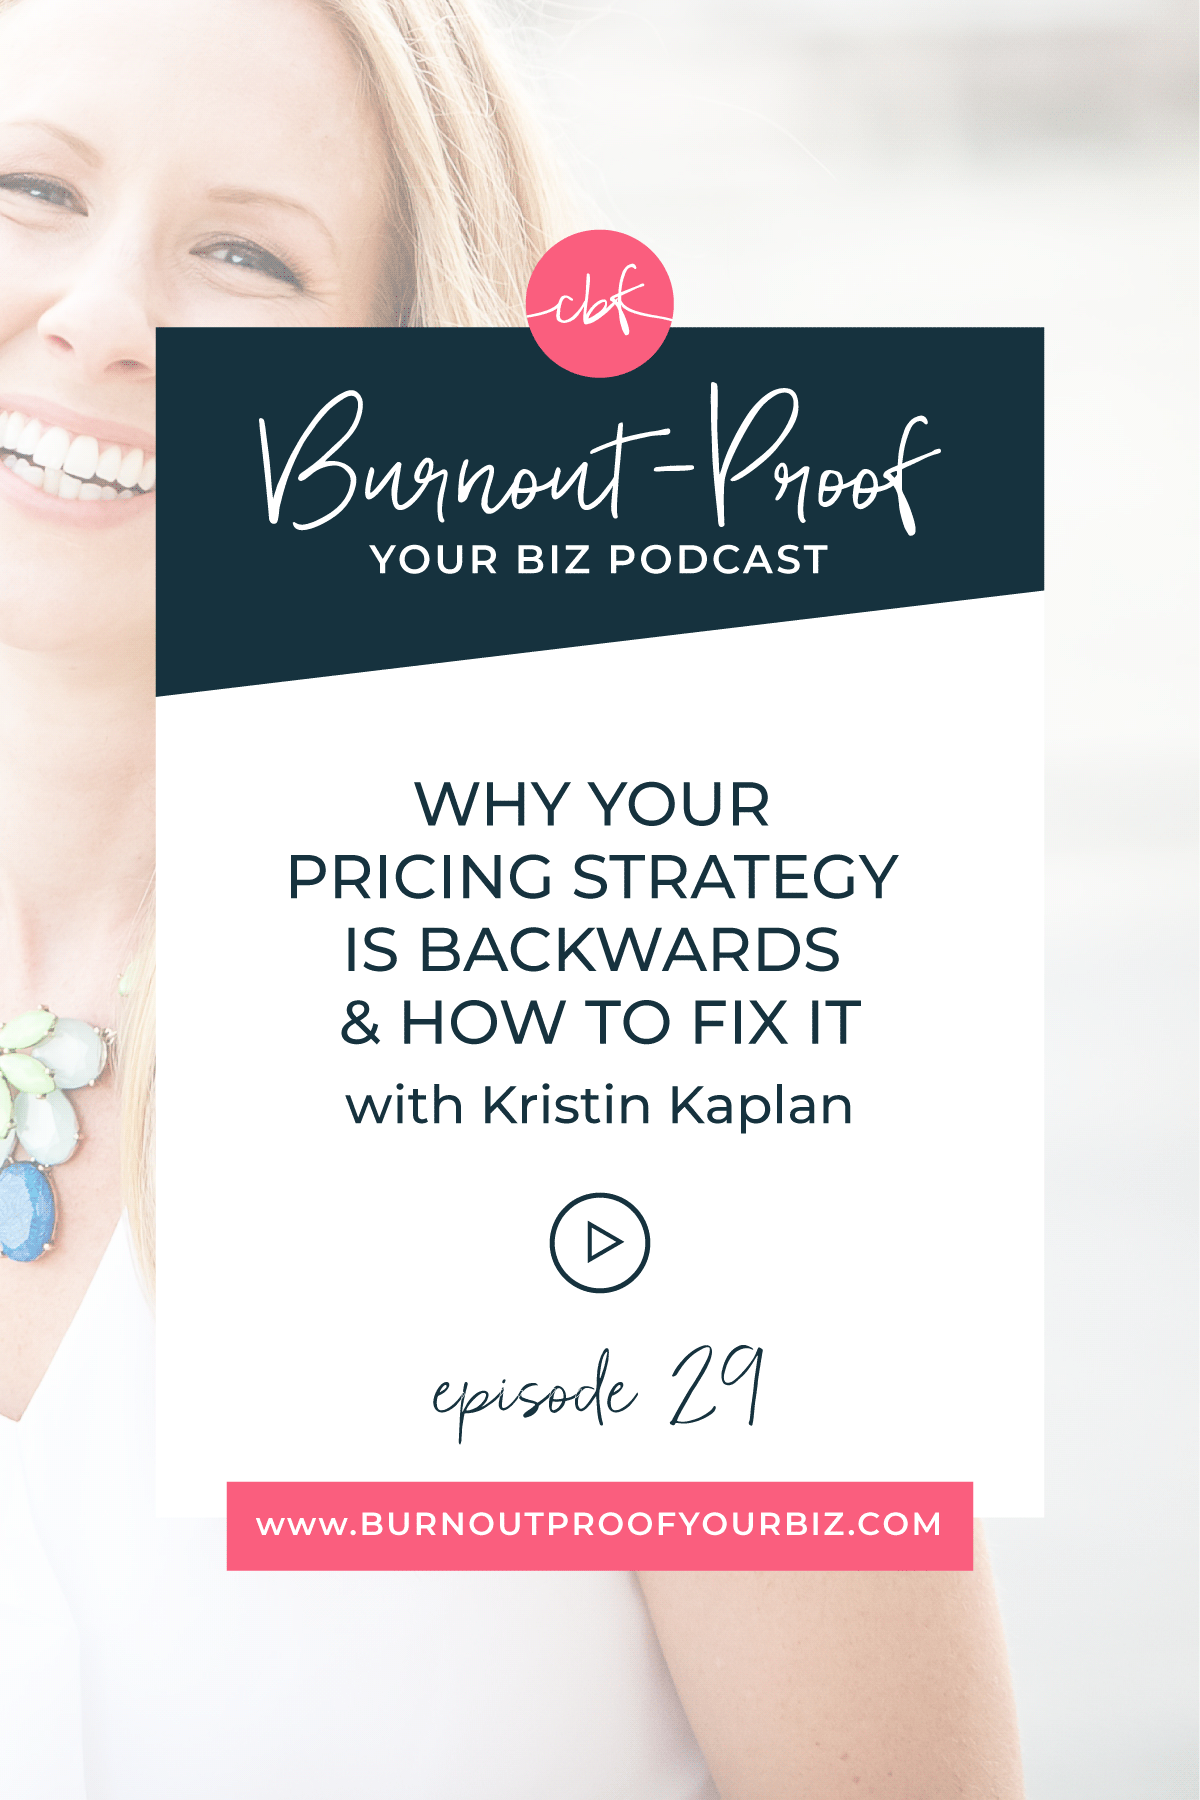 Burnout-Proof Your Biz Podcast with Chelsea B Foster | Episode 029 - Why Your Pricing Strategy is Backwards and How to Fix it with Kristin Kaplan | Learn how to run your biz and live your dream life on your own terms without the fear of burnout. | www.burnoutproofyourbiz.com